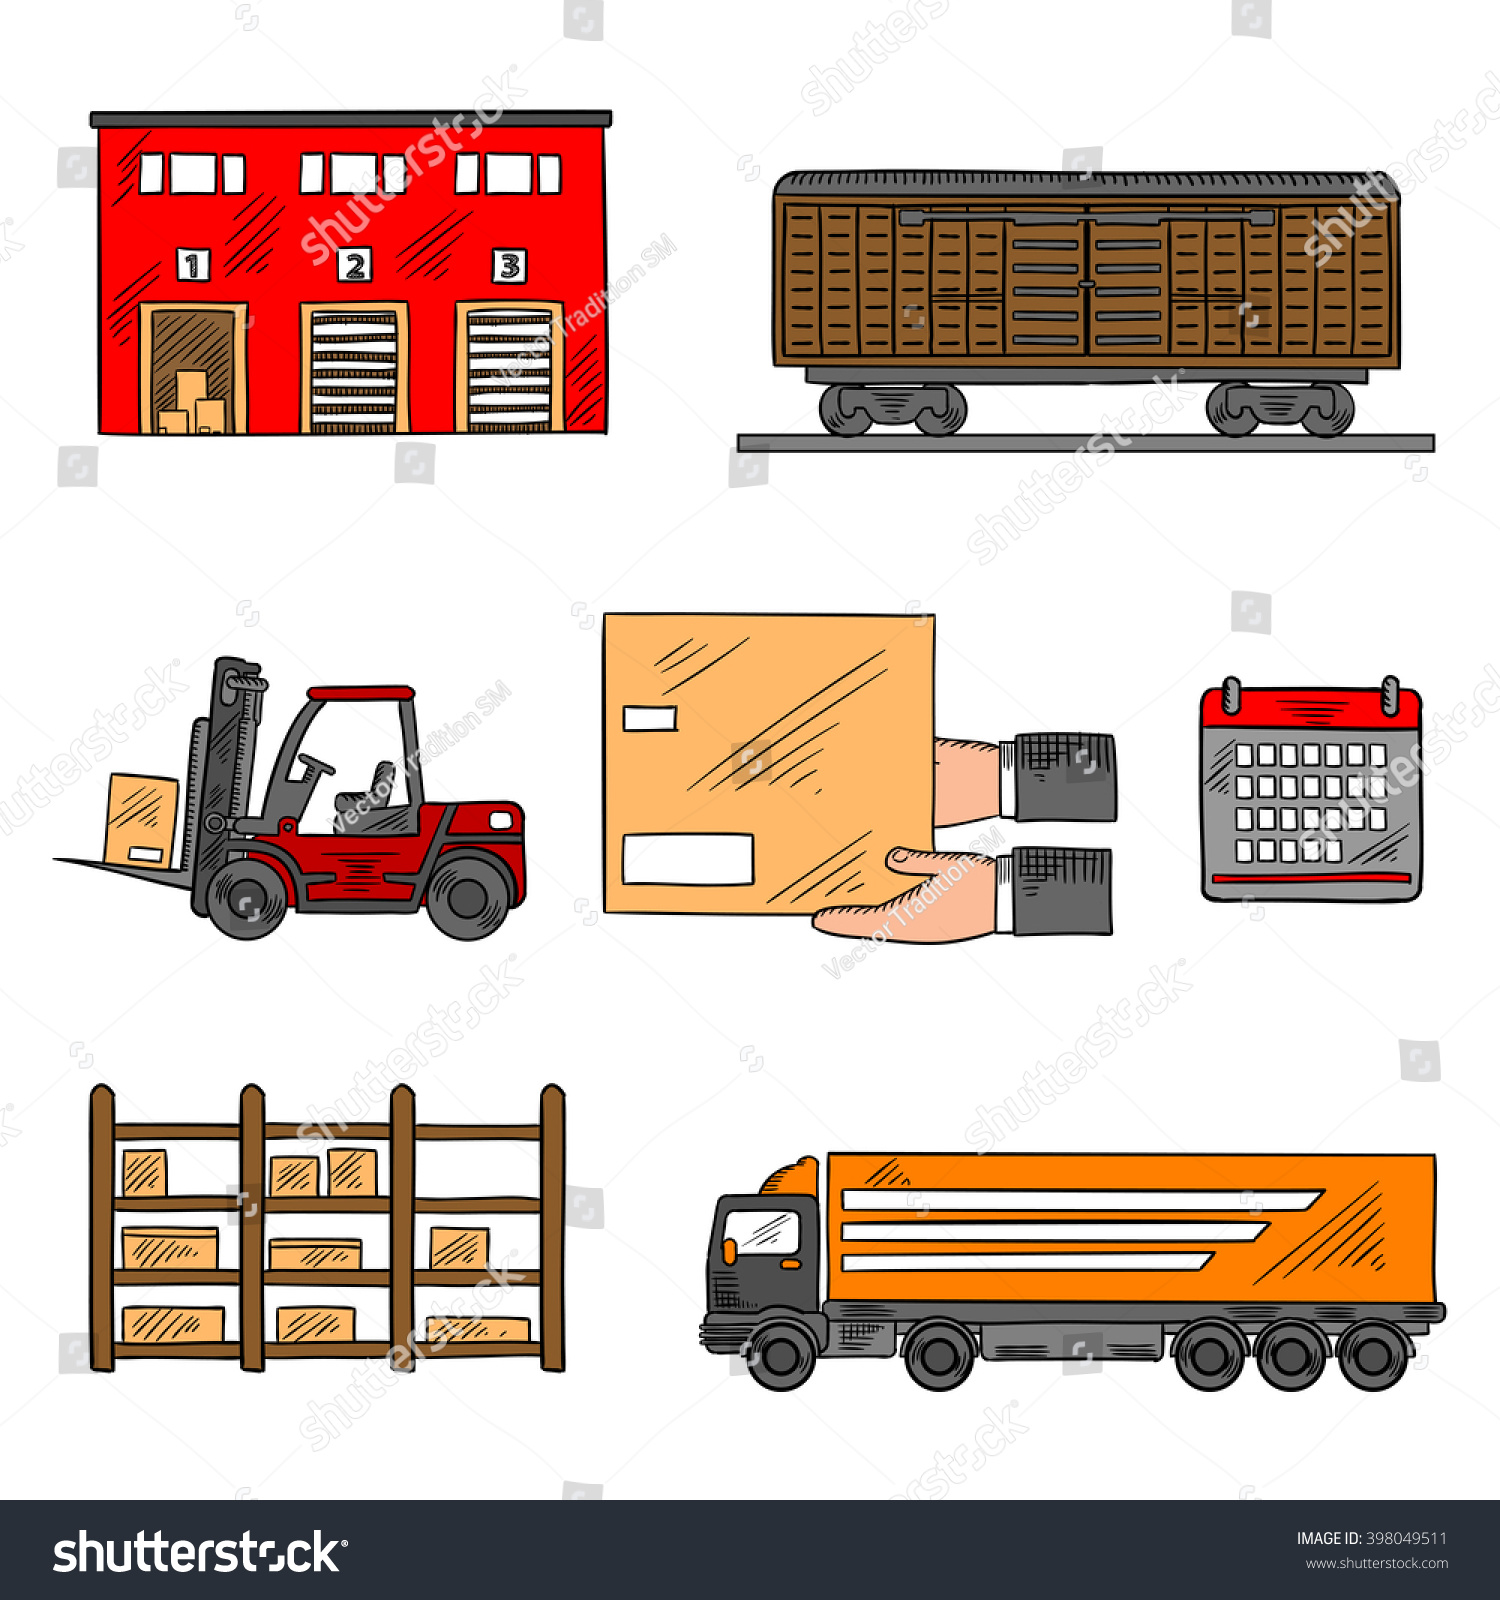 Storage And Delivery Service Elements With Freight Wagon And Delivery  Truck, Warehouse Building, Forklift